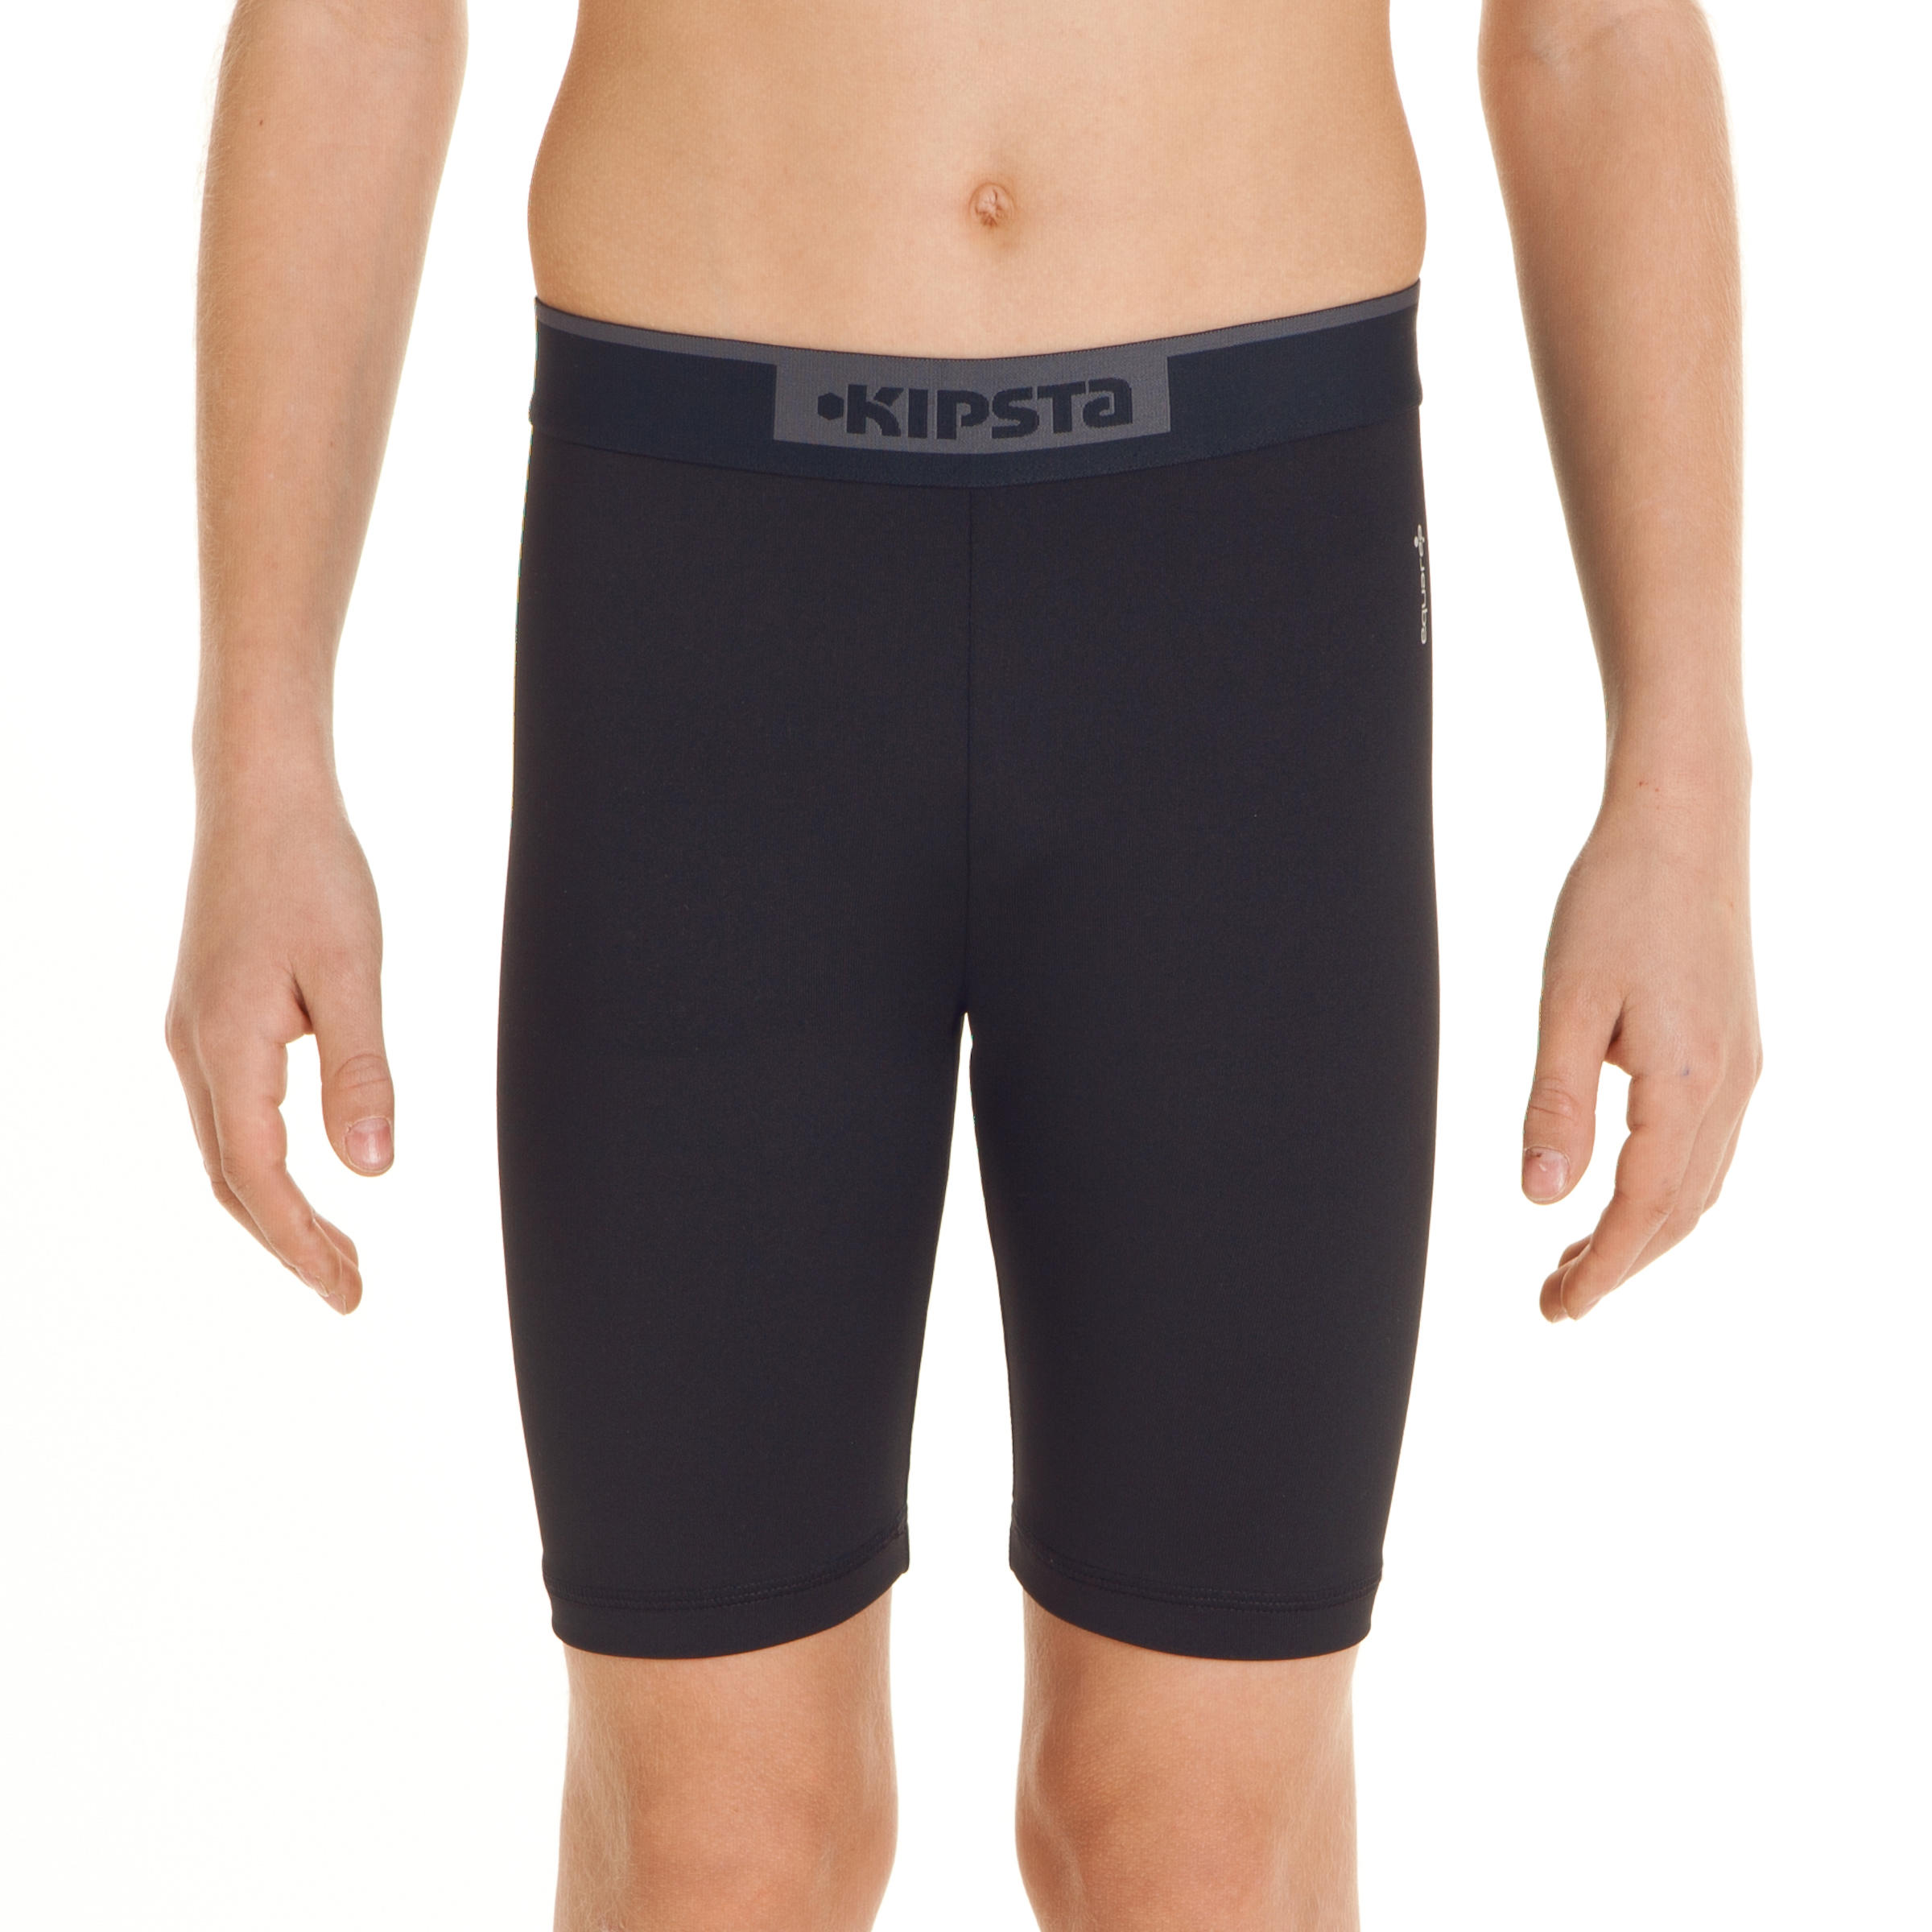 Keepdry Kids Breathable Undershorts - Black